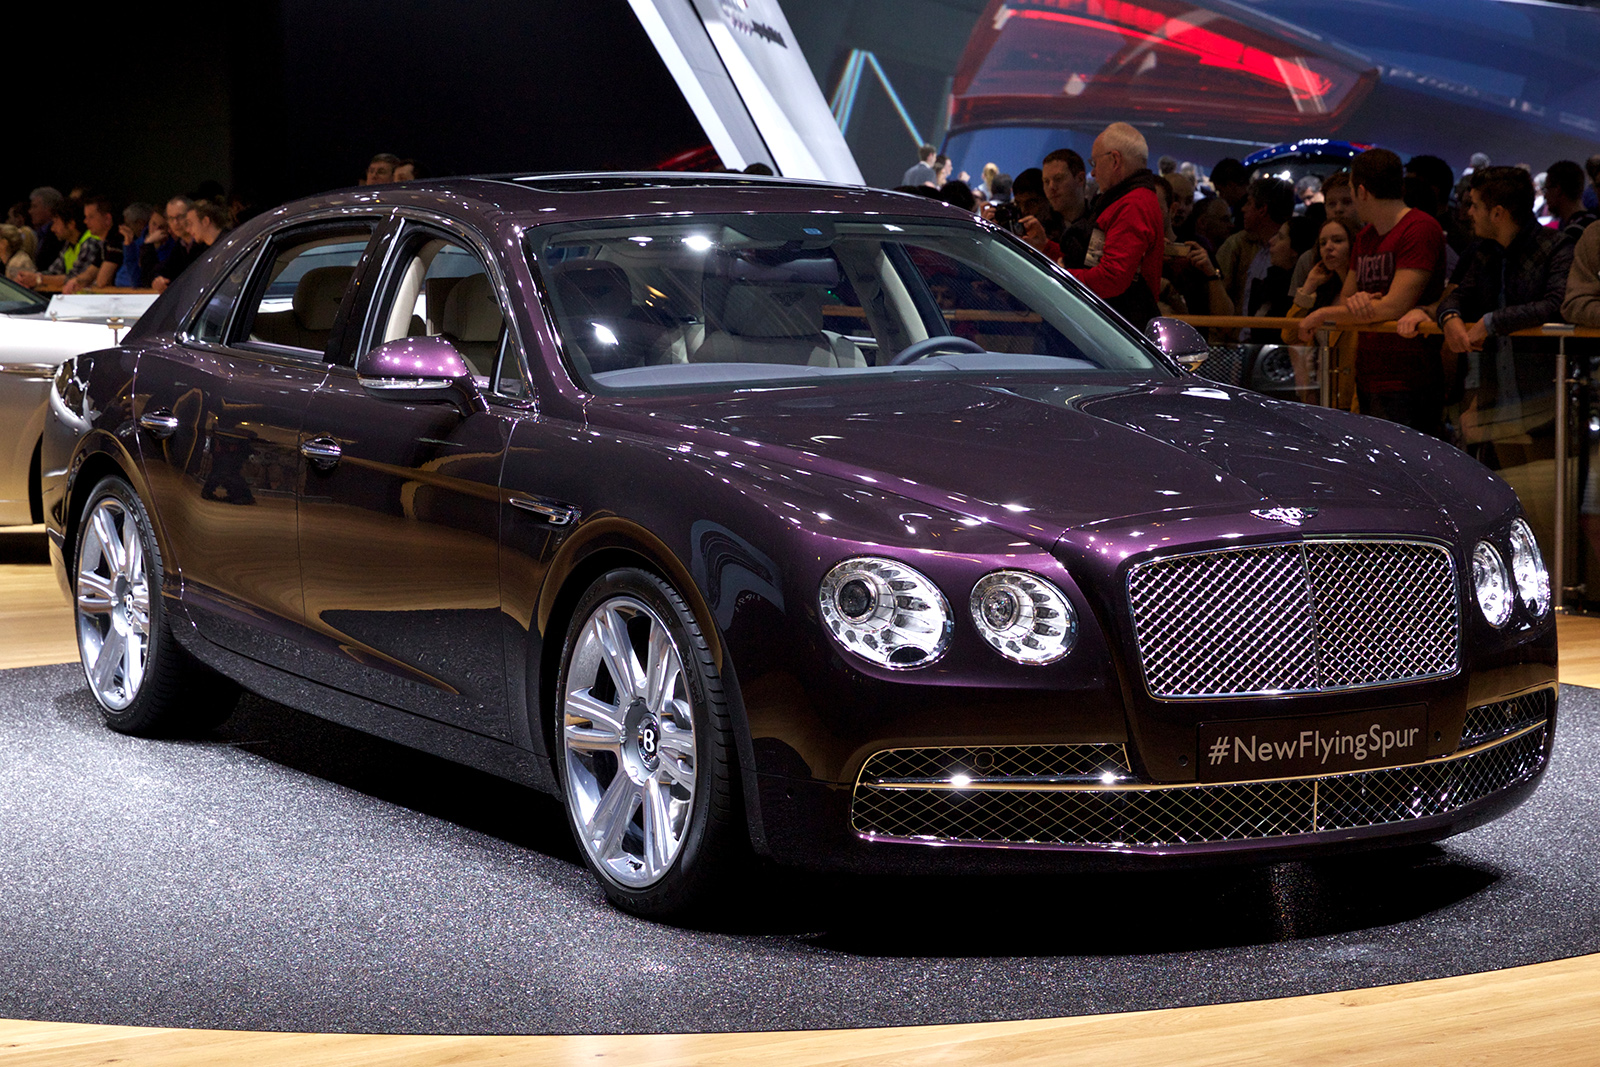 flying Spur - Car Wallpapers in HD For The Iphone ,Android,Desktop,3